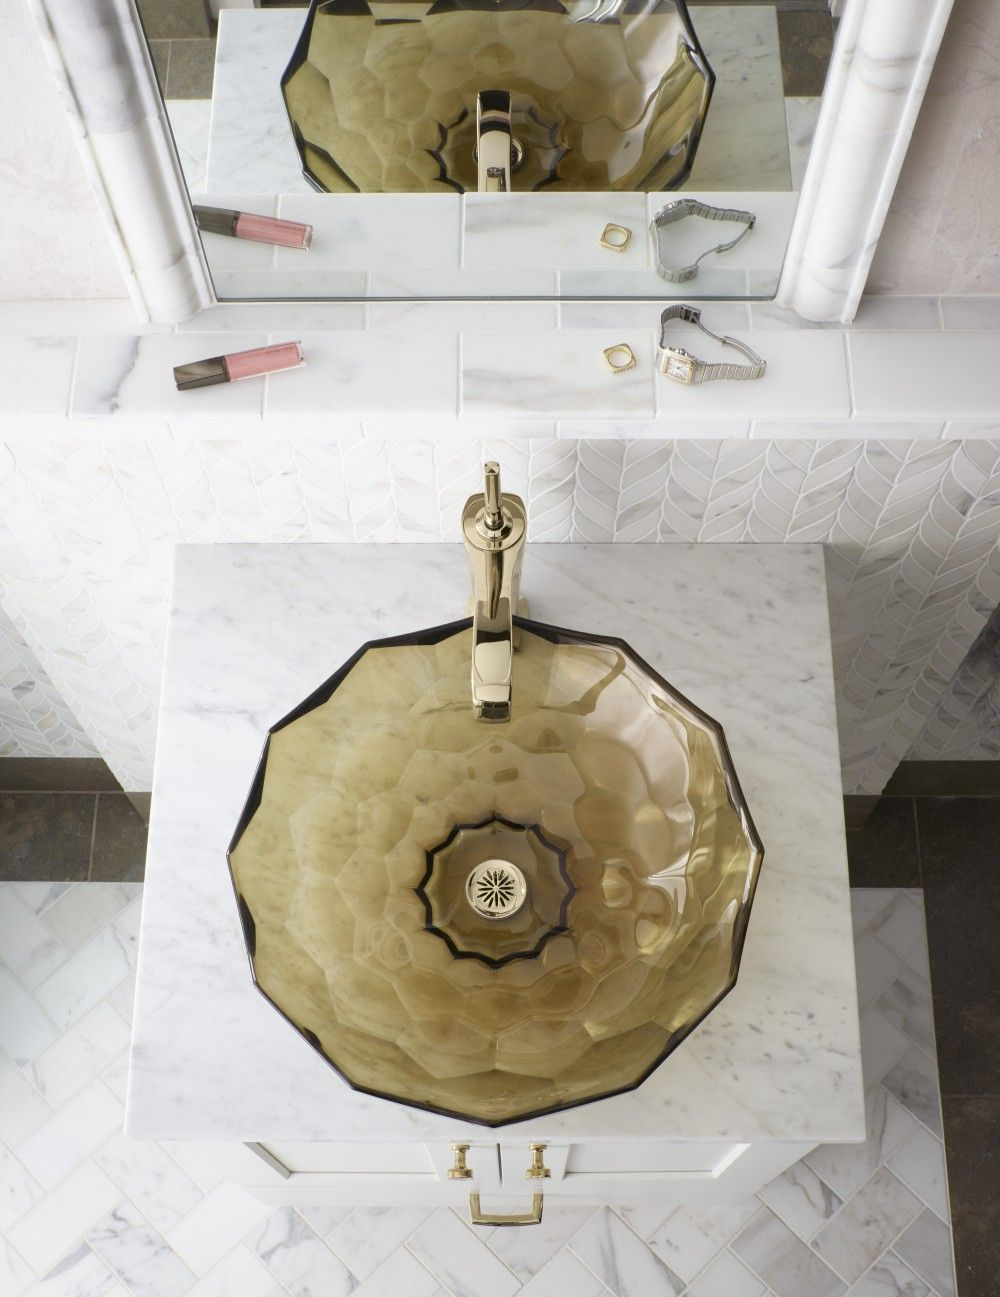 top view of a brown glass sink